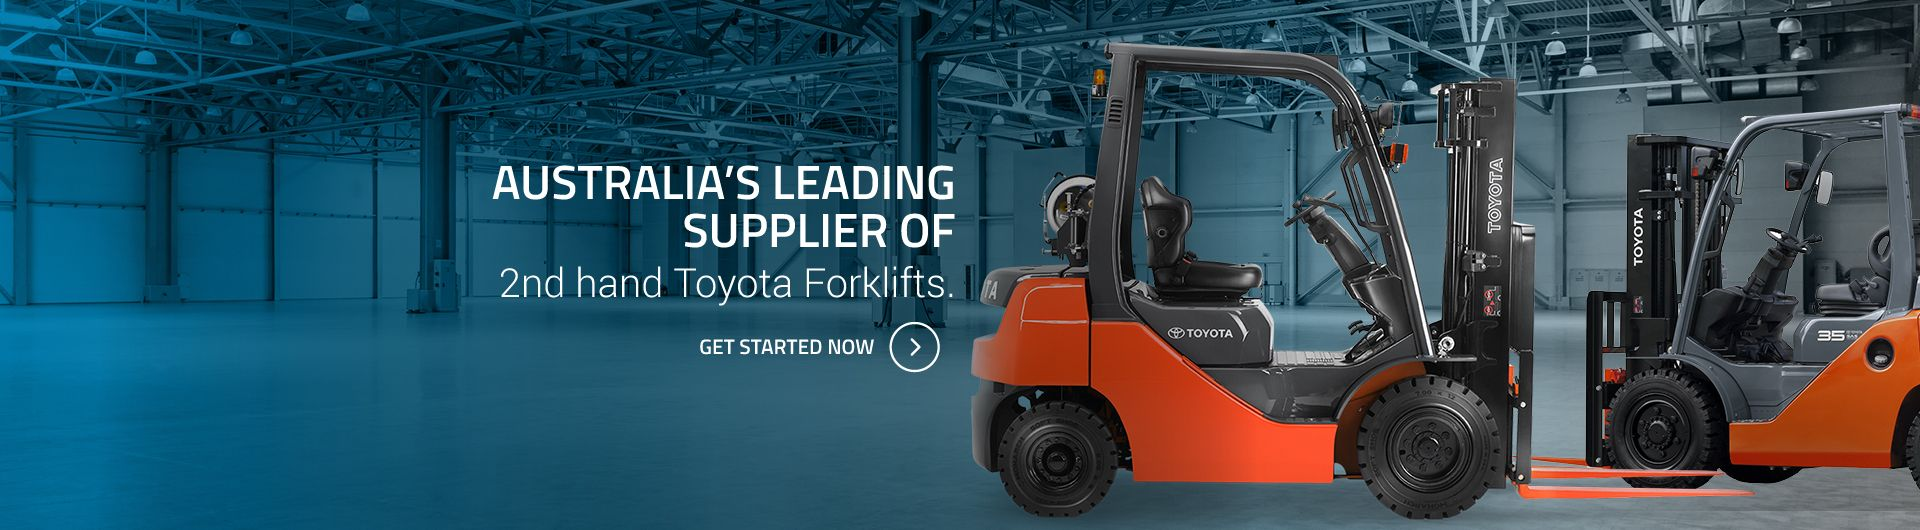 Formidable - Leading Supplier of used Toyota Forklifts